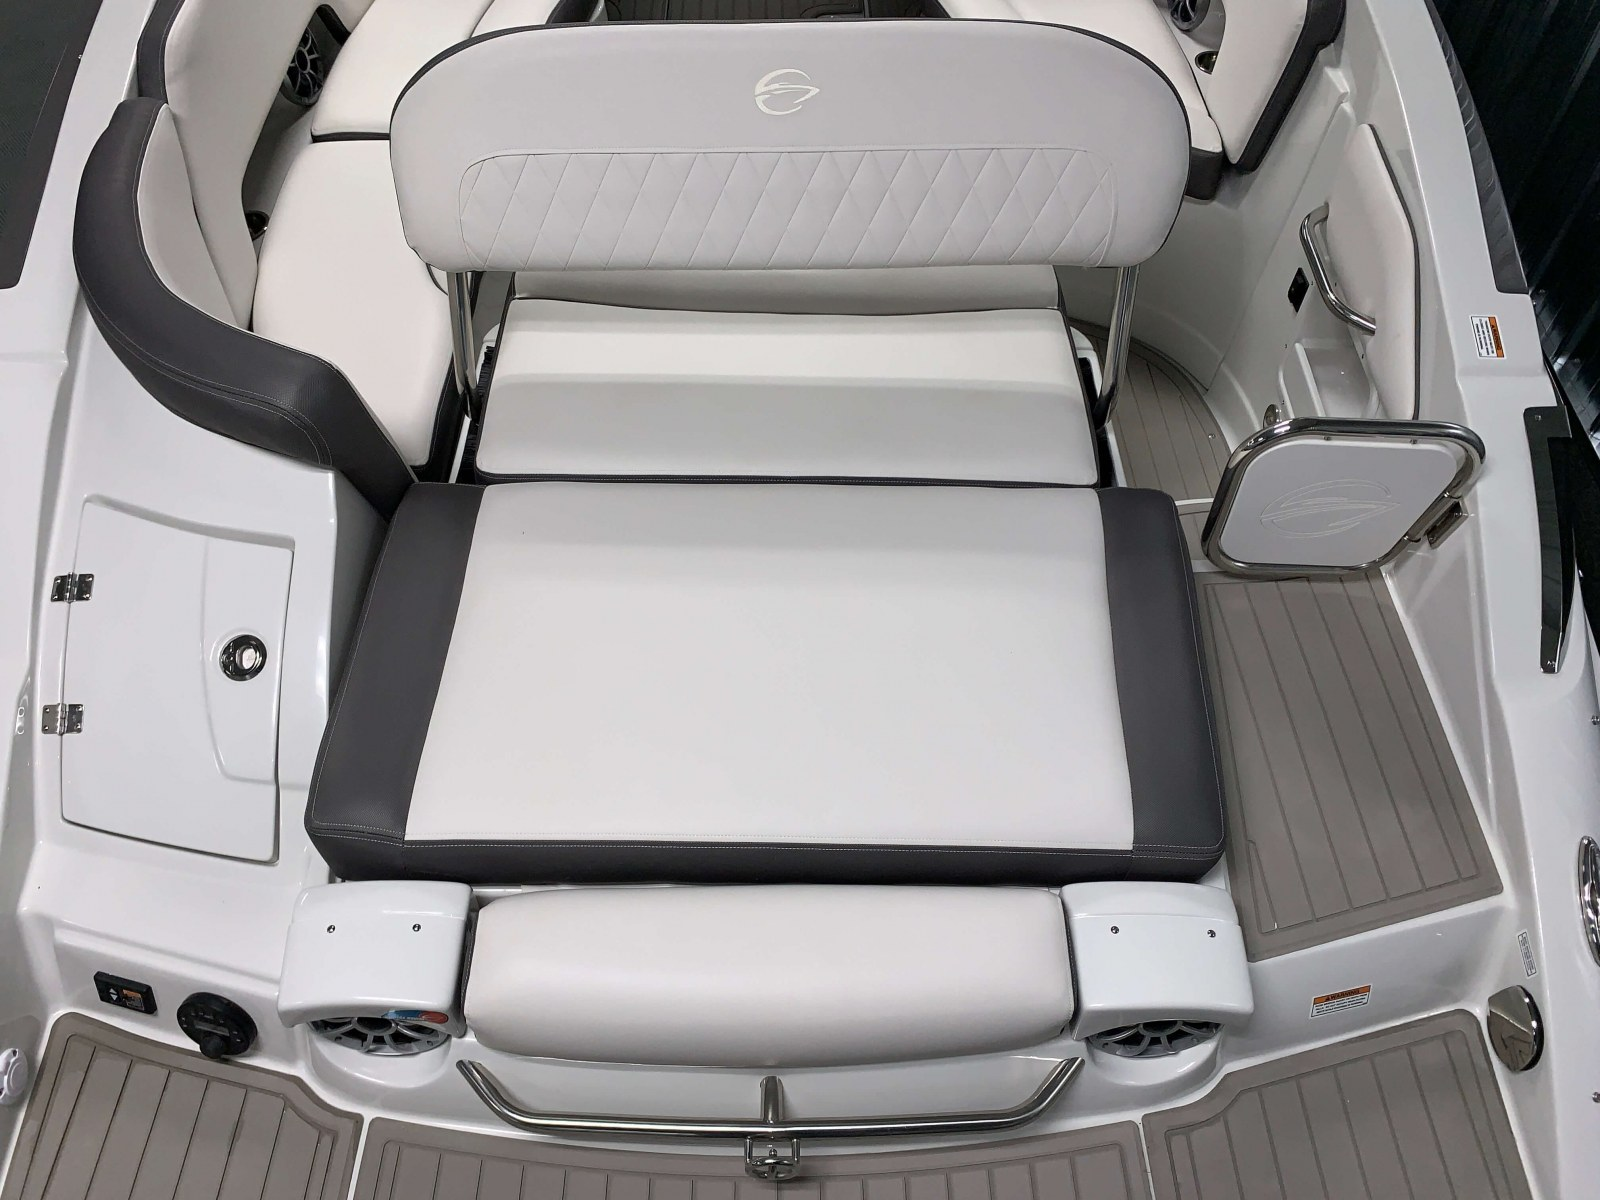 Aft Electric Sun Lounge Seat of the Slate and Onyx Exterior Colors on the 2021 Crownline 290 SS Bowrider Boat